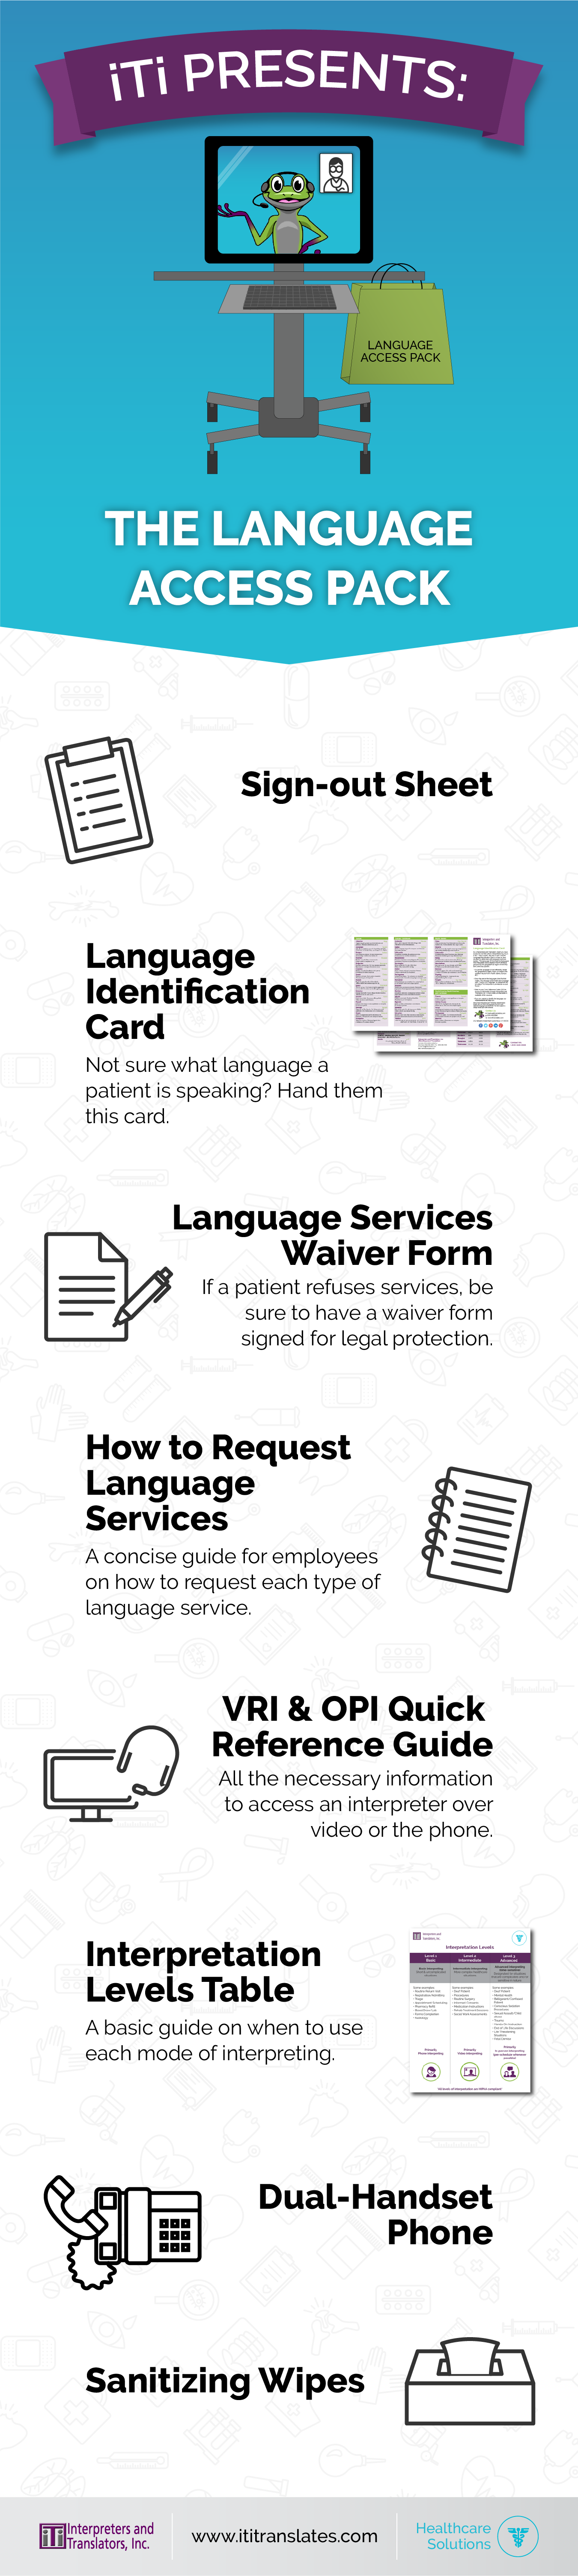 Language access pack, what to include, infographic